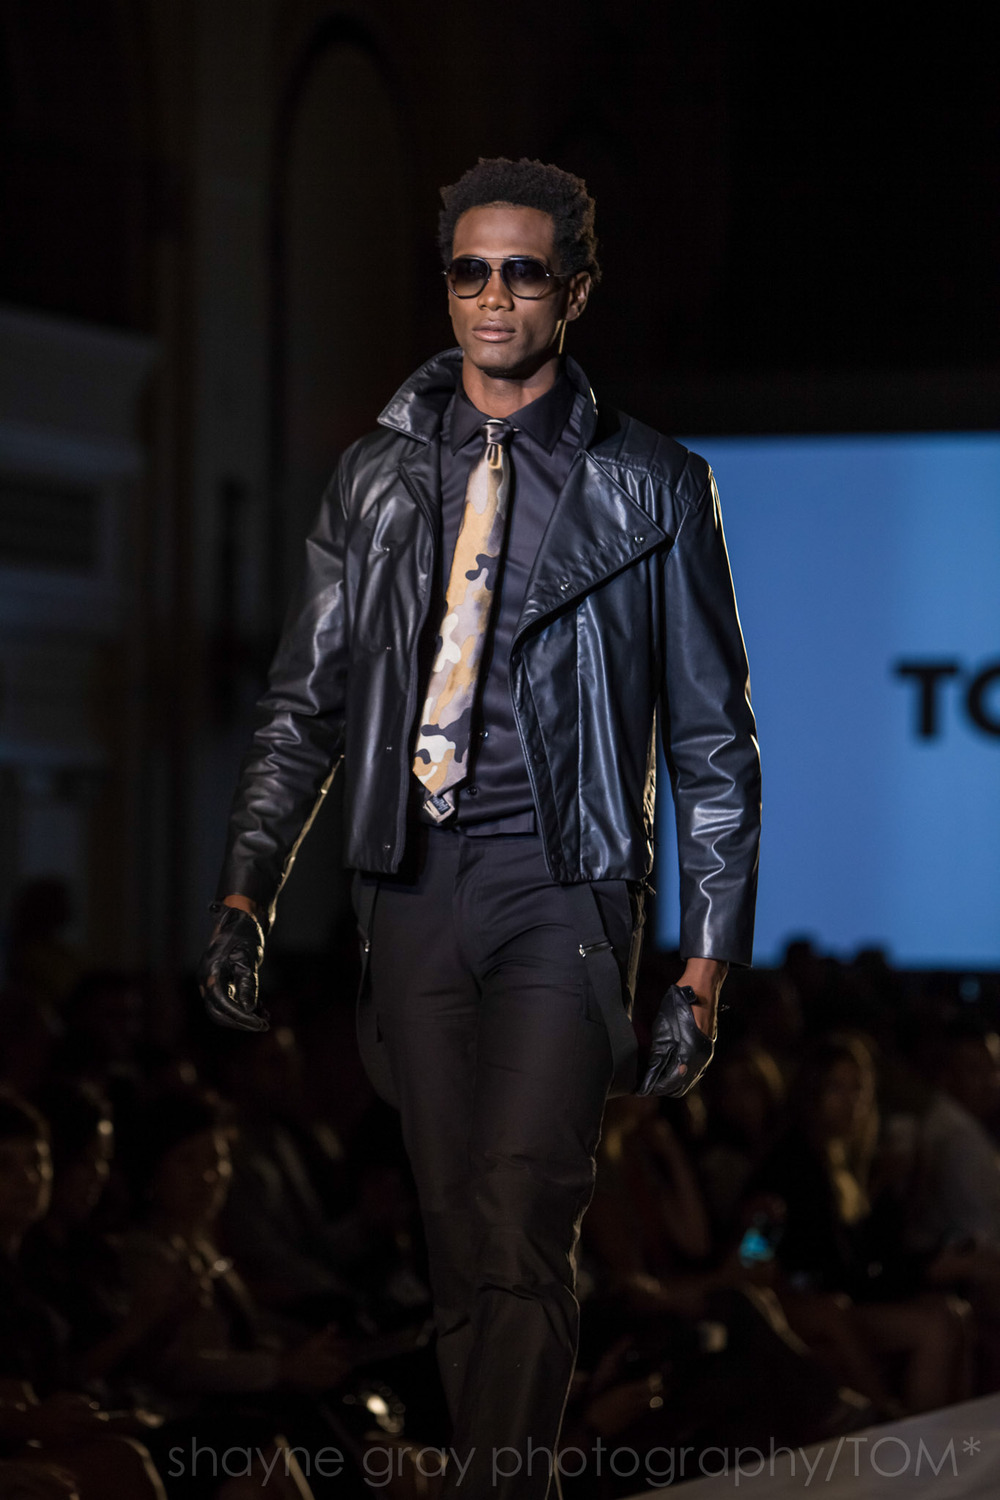 Shayne-Gray-Toronto-men's-fashion_week-TOM-christopher-bates-7387.jpg